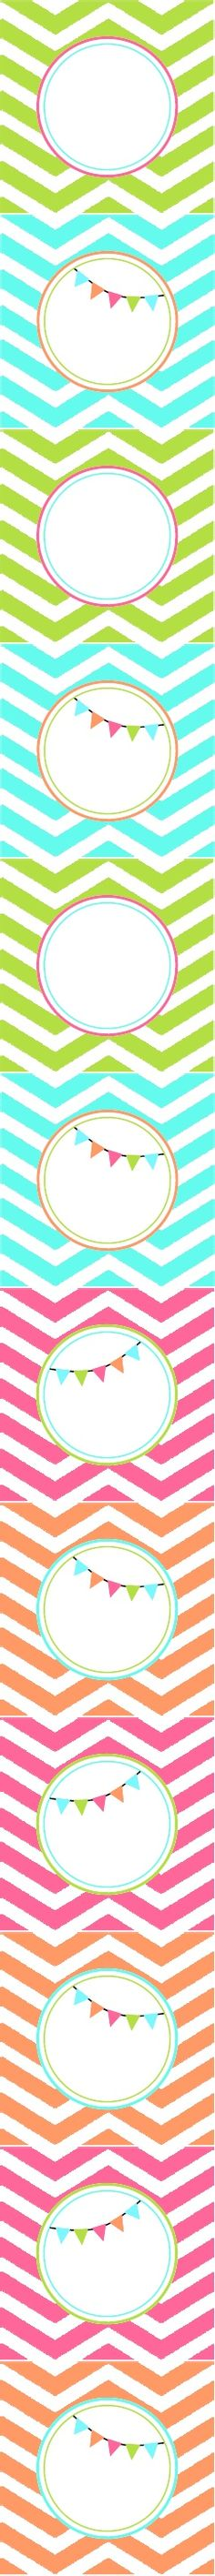 Bright Chevron Party Circles - Thank u tags Printable Labels, Printable Paper, Party Printables, Free Printables, Birthday Fun, Chevron Birthday, Party Decoration, Free Prints, Envelopes